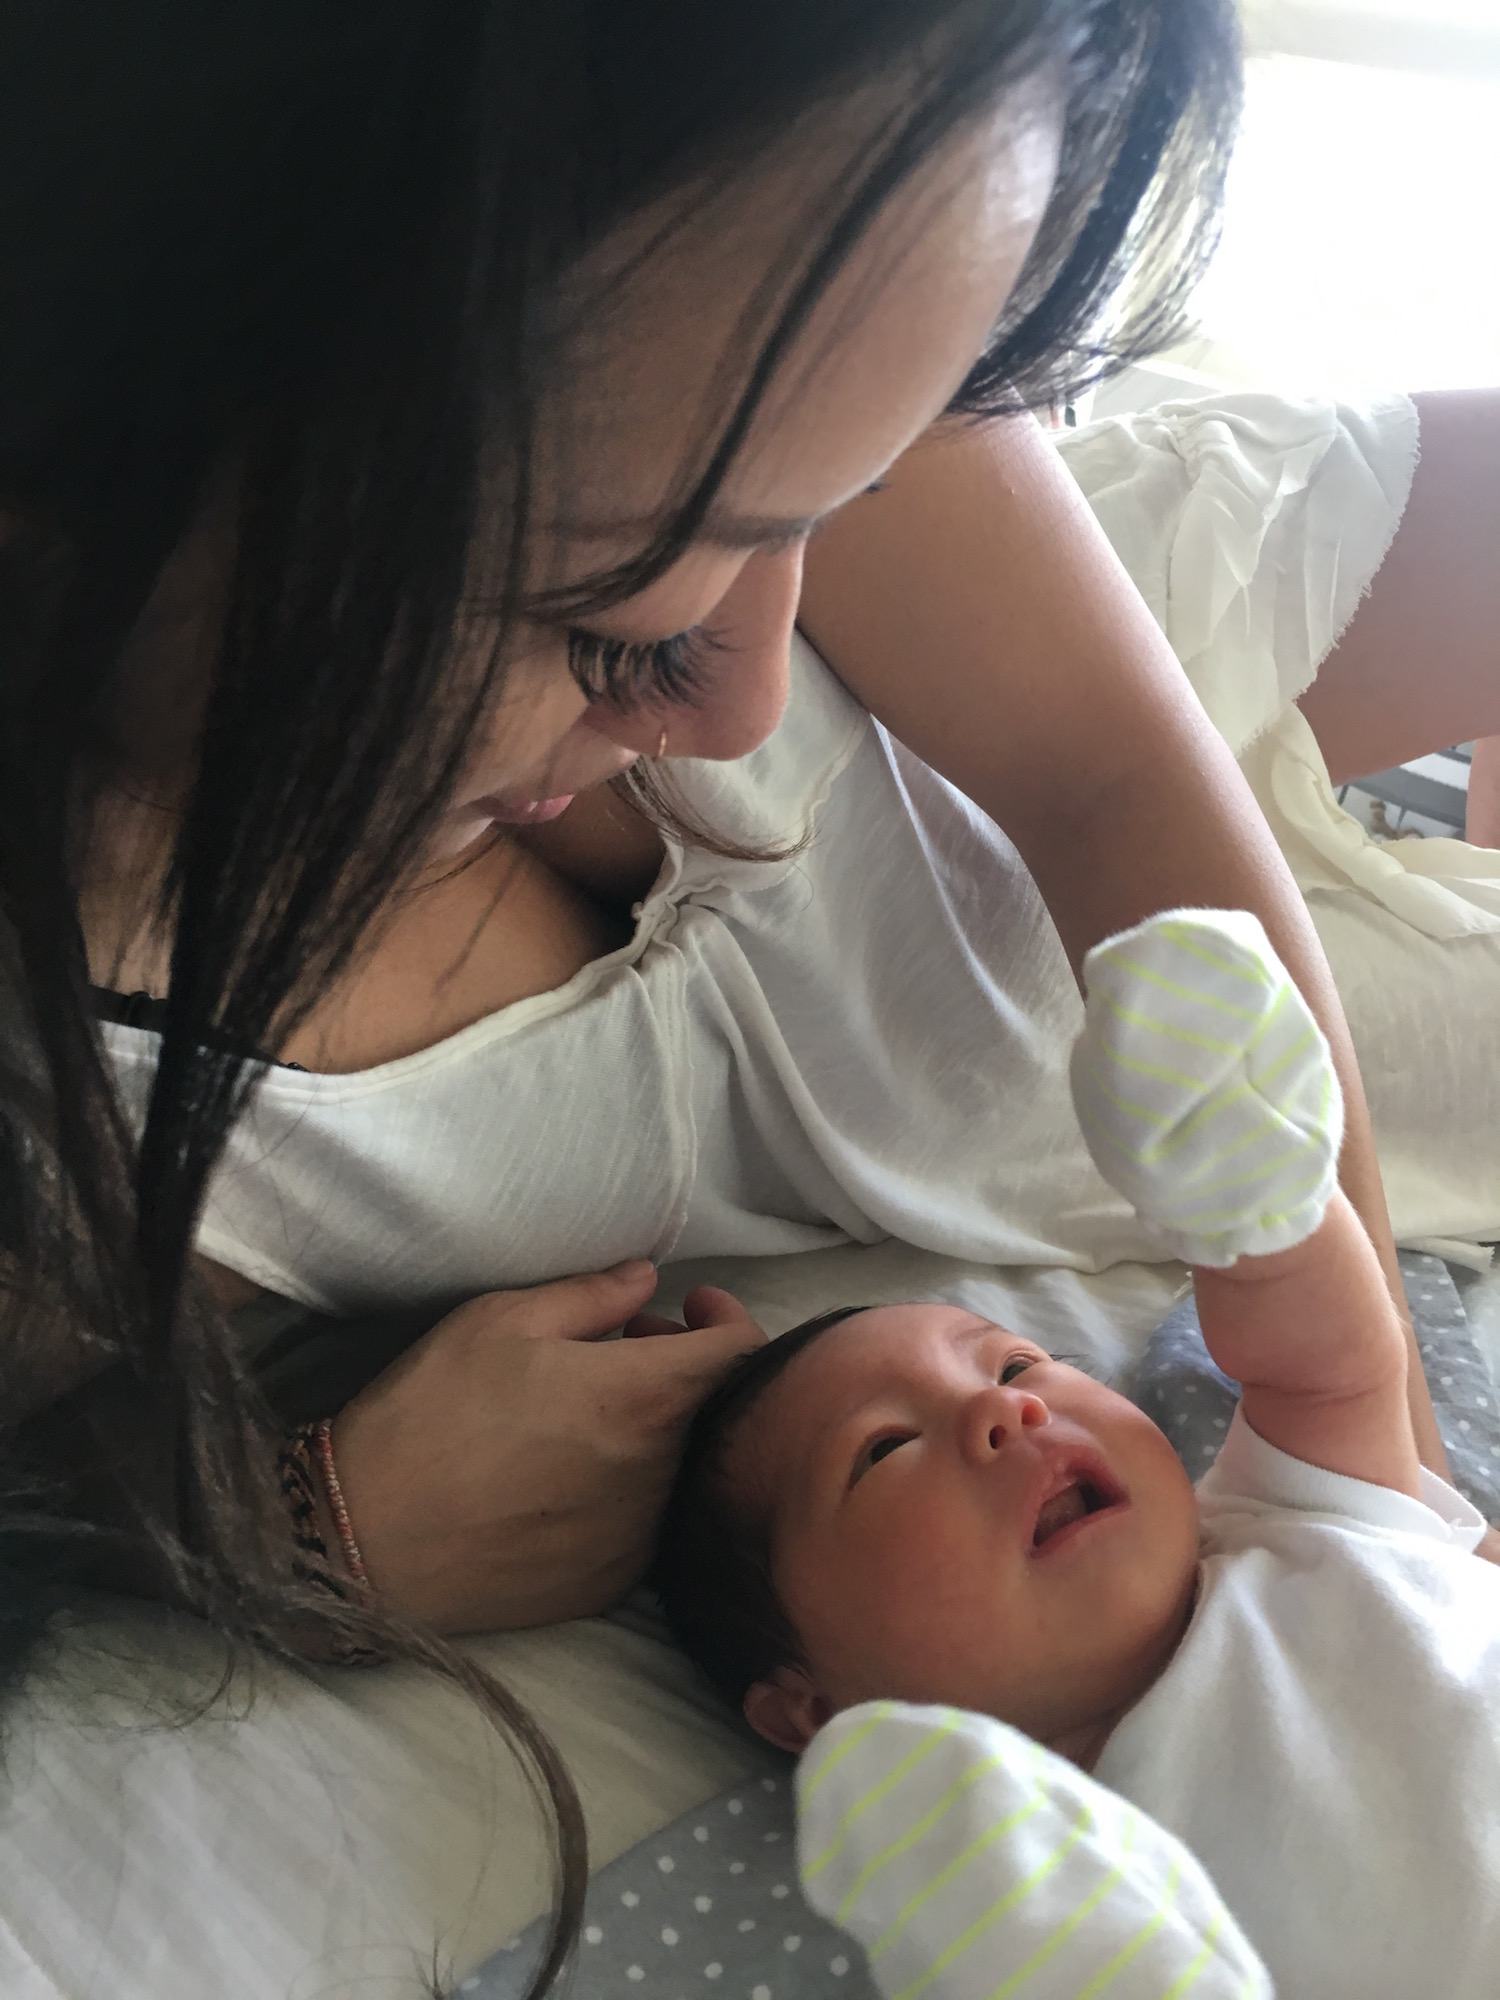 Our Sister,Jessica Gueco shares here experience with postpartum depression in hopes to let other women know they are not alone. Check out her blog  here .